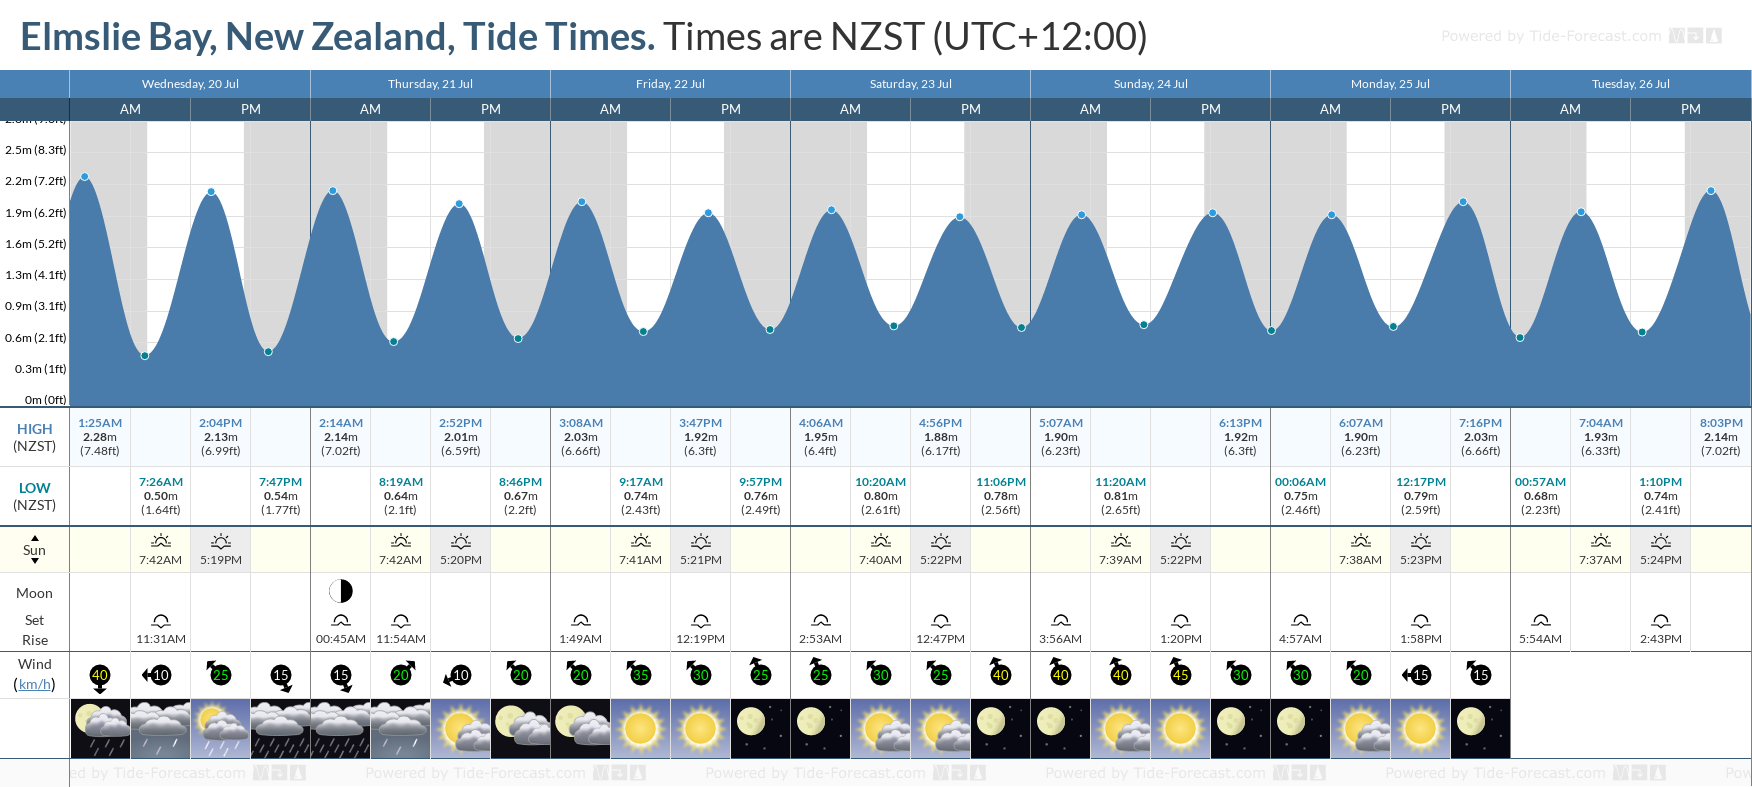 Elmslie Bay, New Zealand Tide Chart including high and low tide tide times for the next 7 days